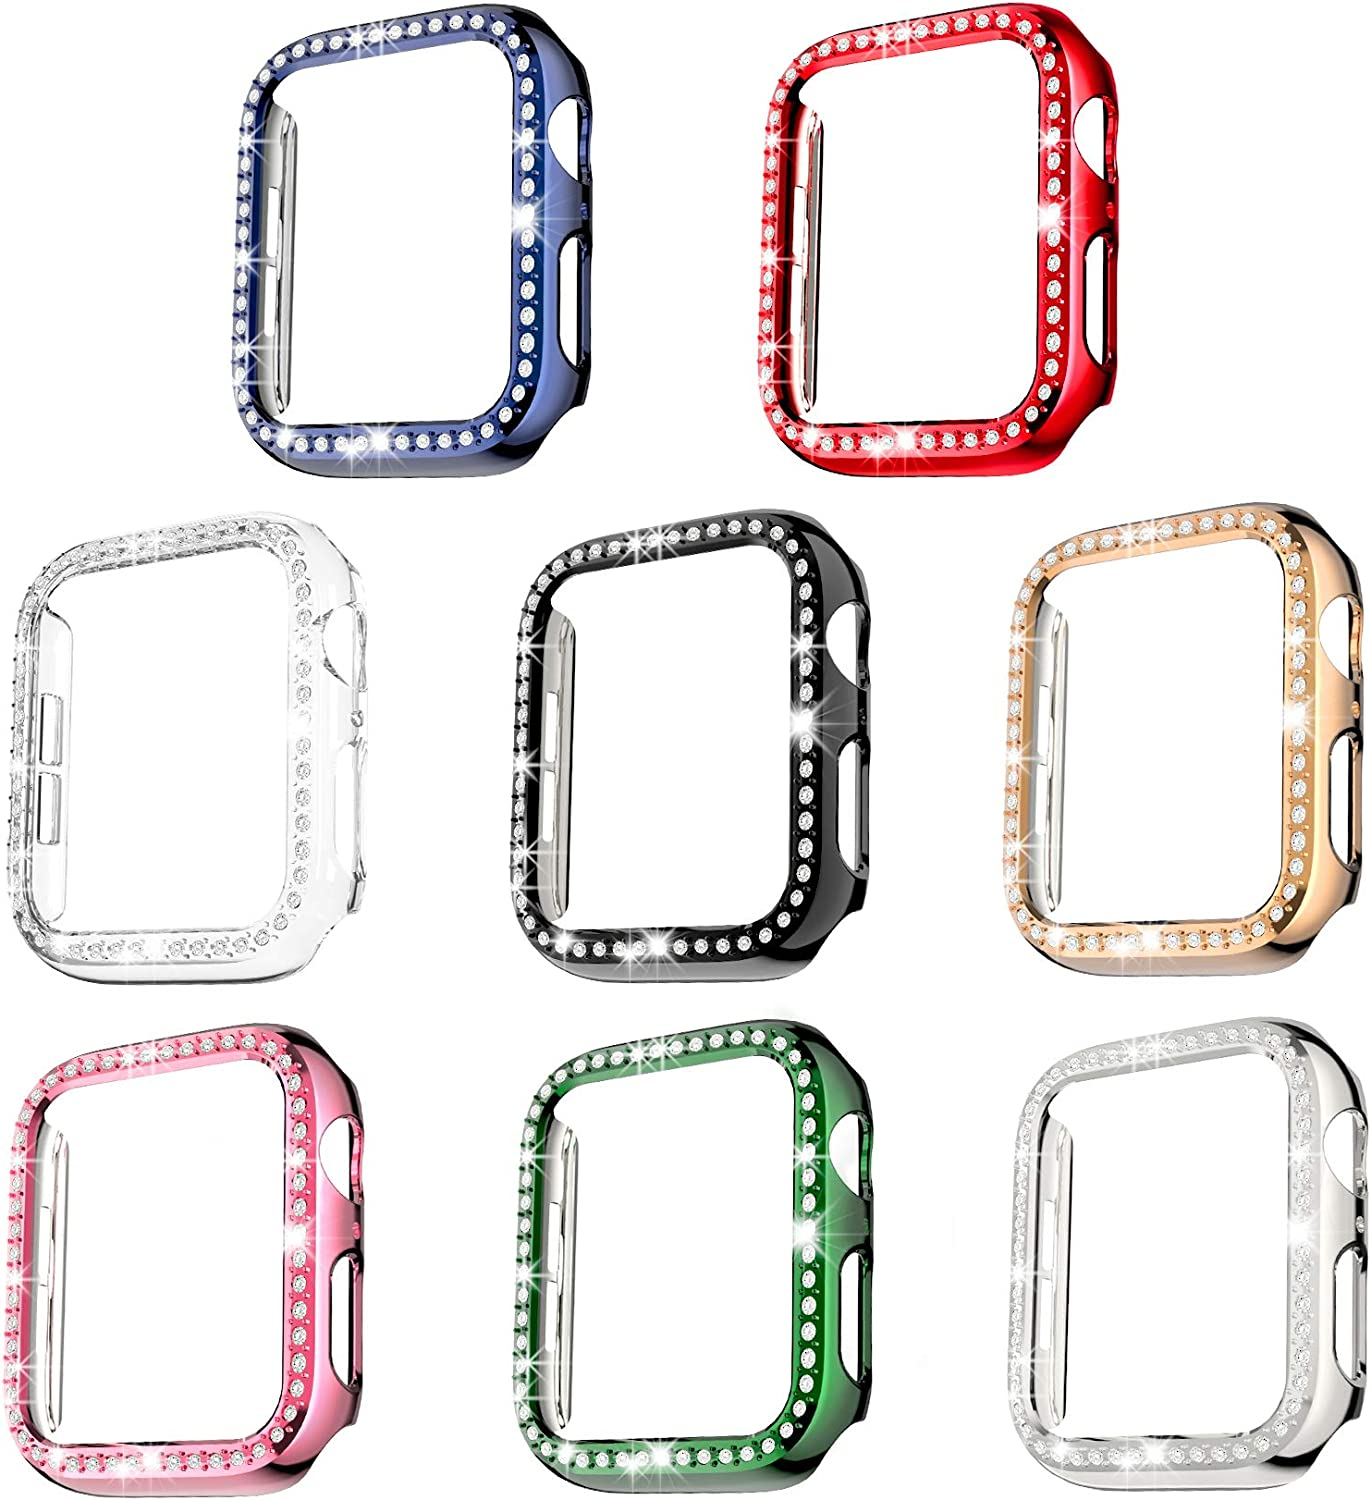 Drztope 8-Pack Protector Case Compatible with Apple Watch Series 3/2/1 Cover 38mm, Bling Crystal Diamonds Protective Cover PC Plated Bumper Frame Accessories for iwatch Series 3/2/1